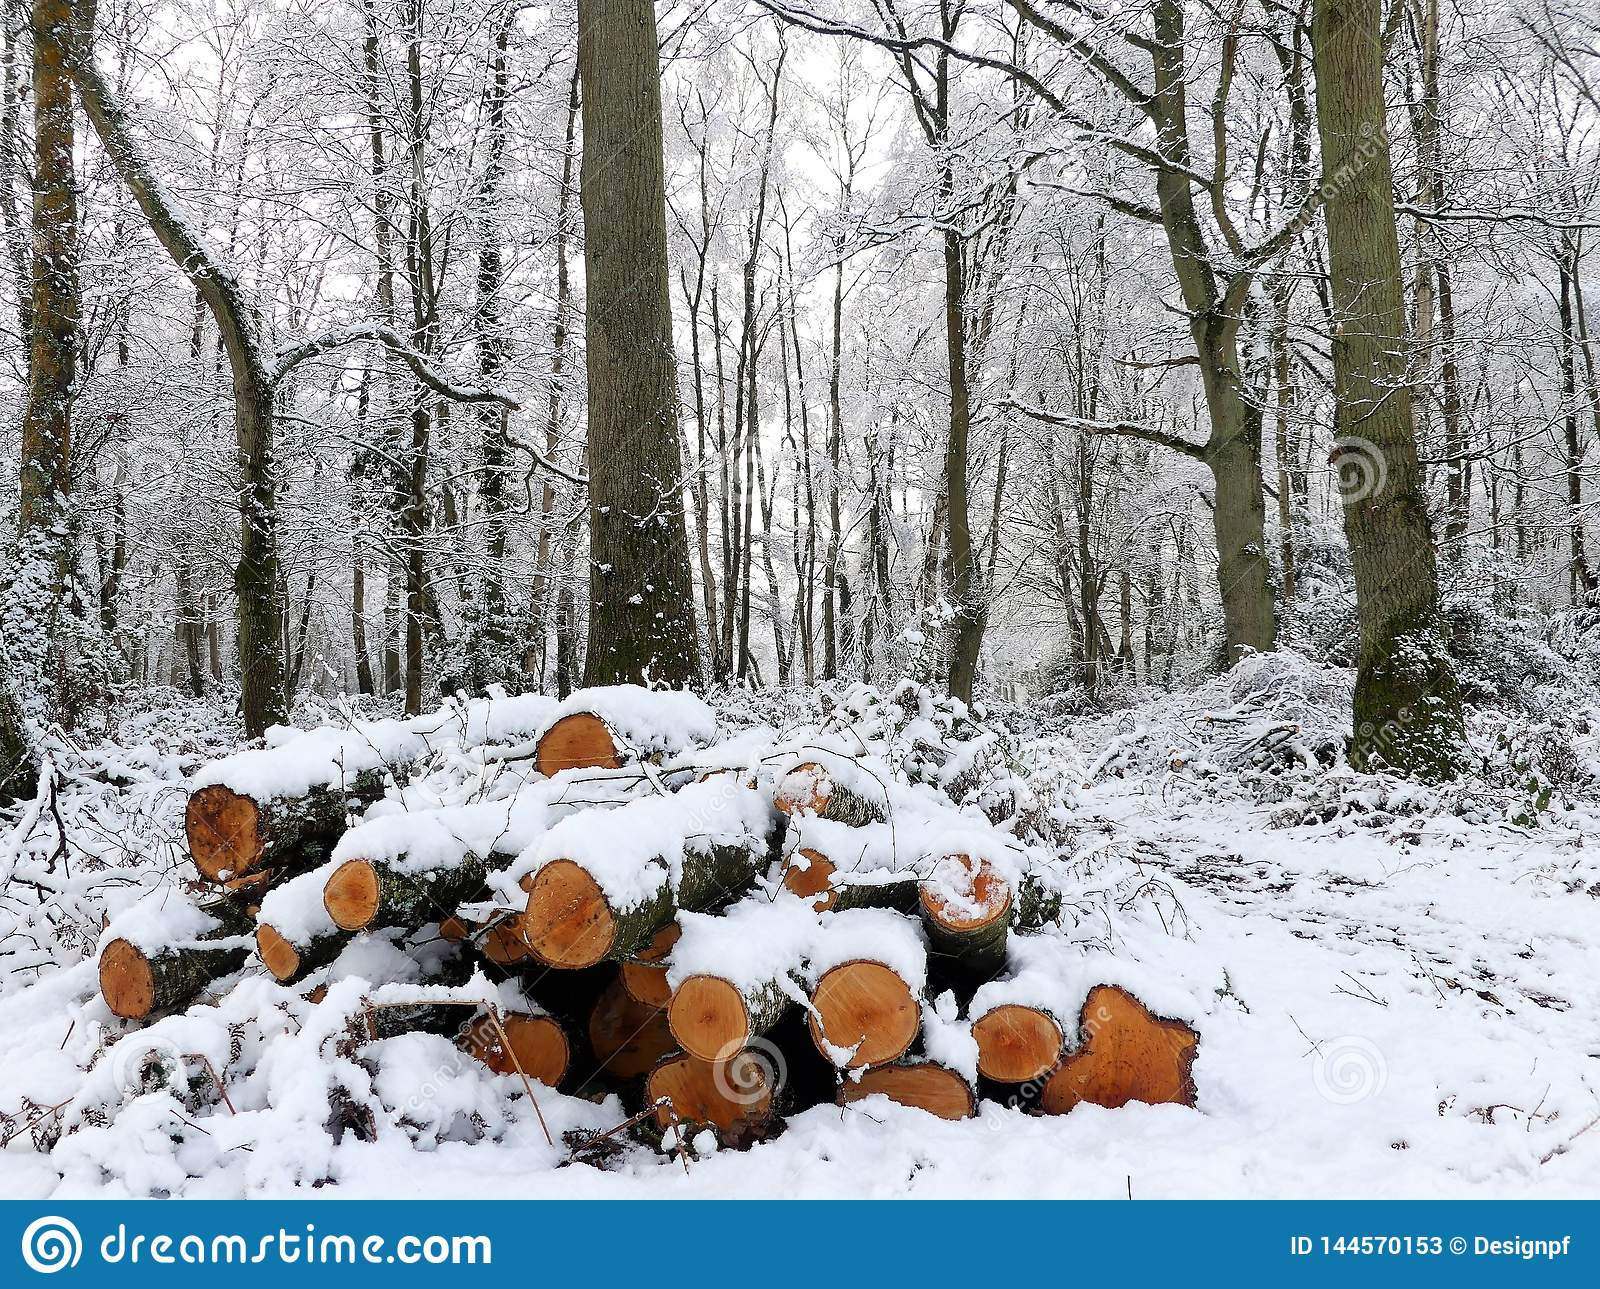 Pile of snow covered logs, Chorleywood Common, Hertfordshire